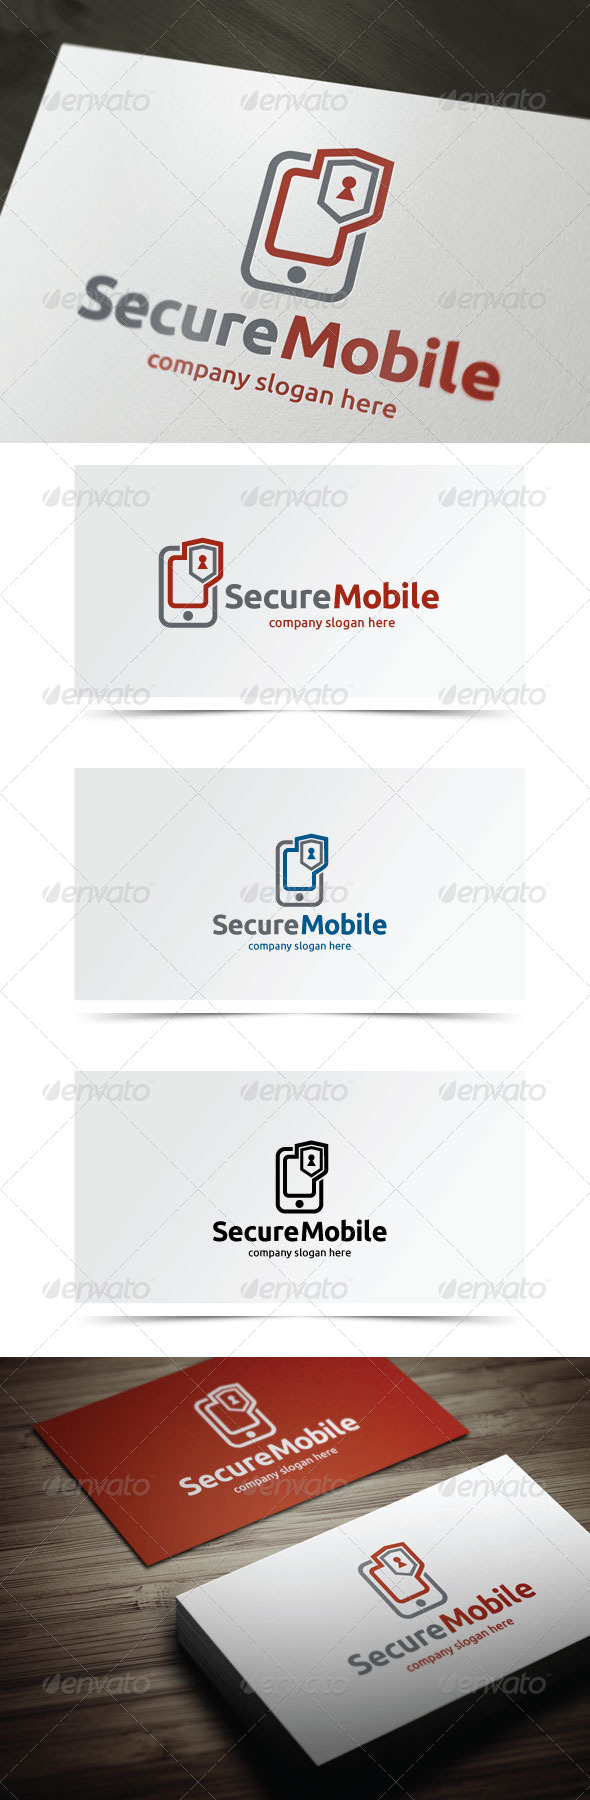 GraphicRiver Secure Mobile 6124007